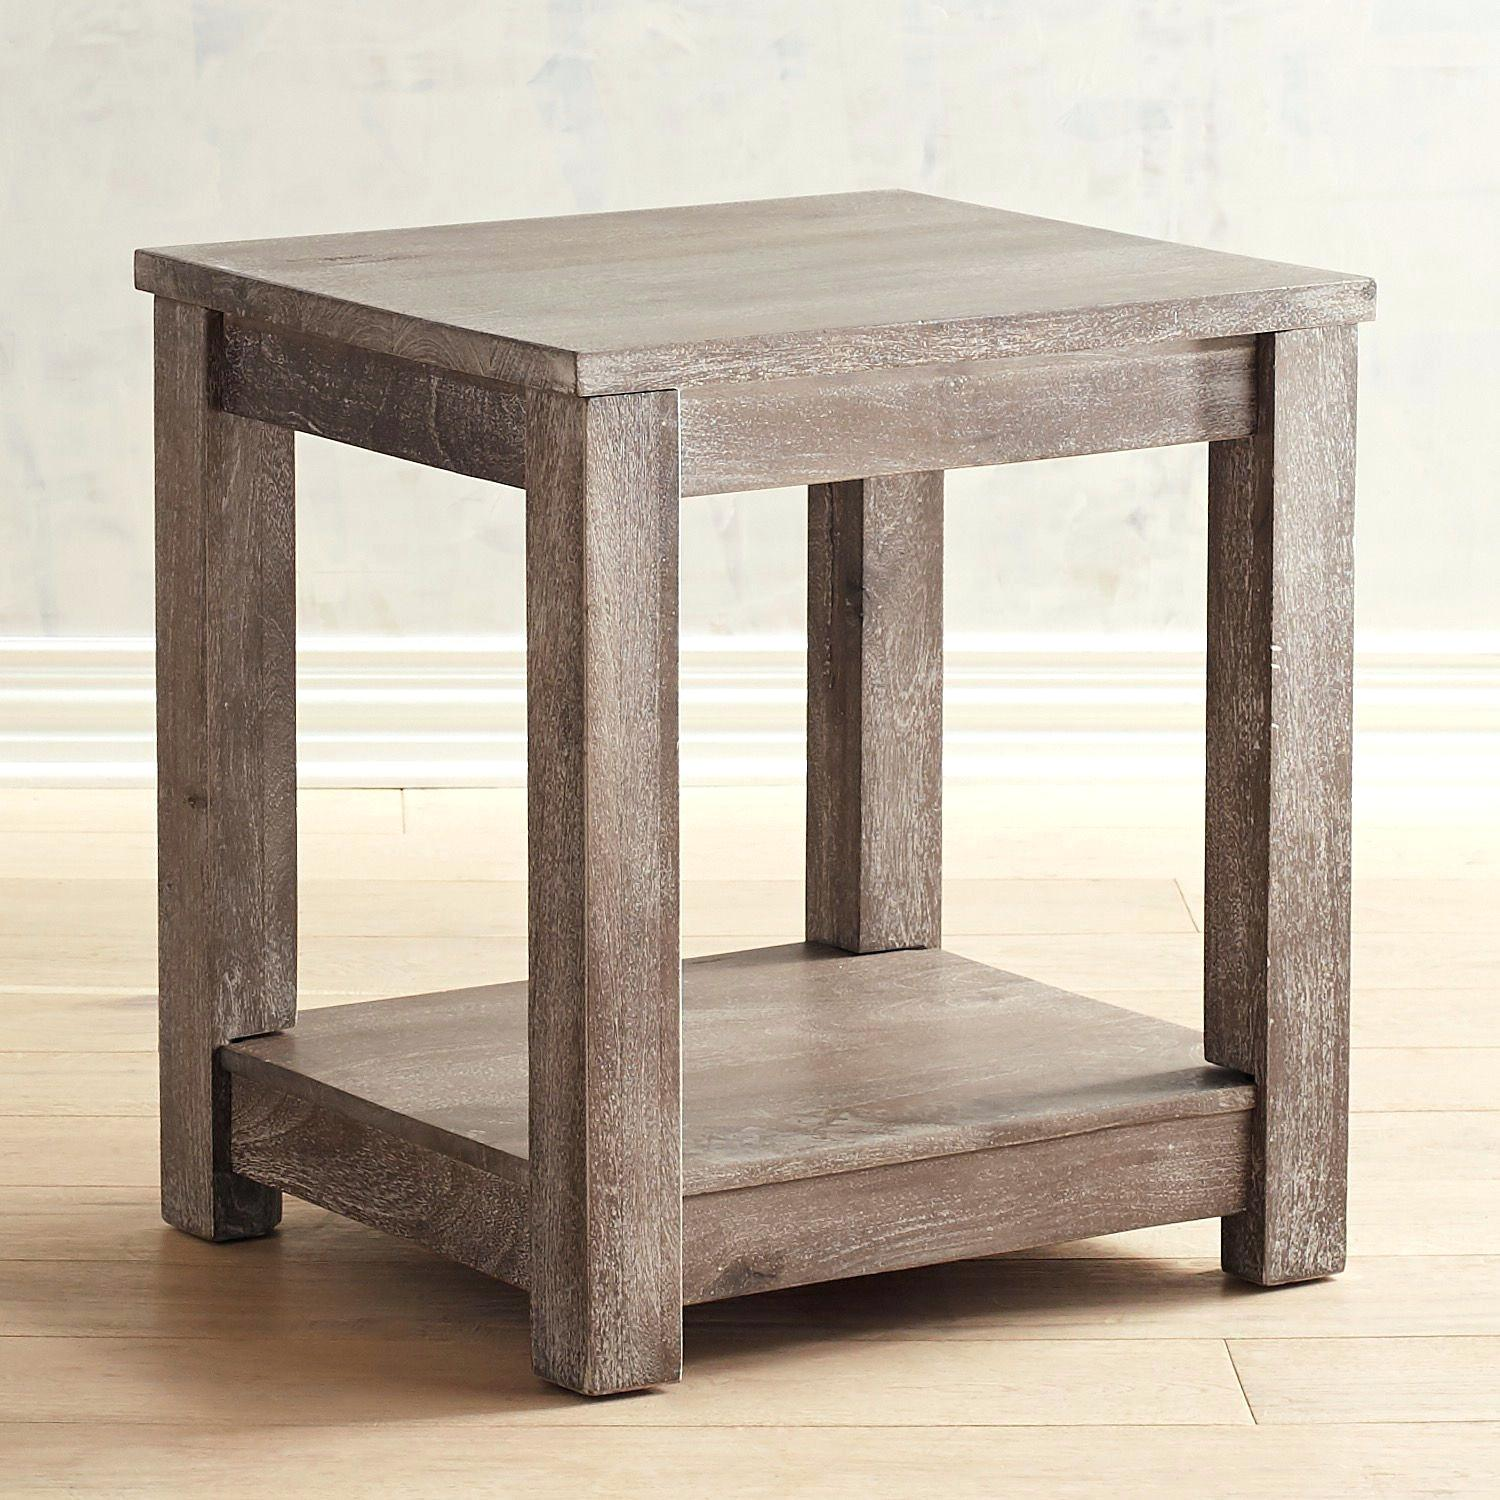 pier one accent tables imports drum table collection round outdoor end hidden storage side gray reclaimed wood coffee whynter wine cooler coastal rugs inexpensive patio furniture